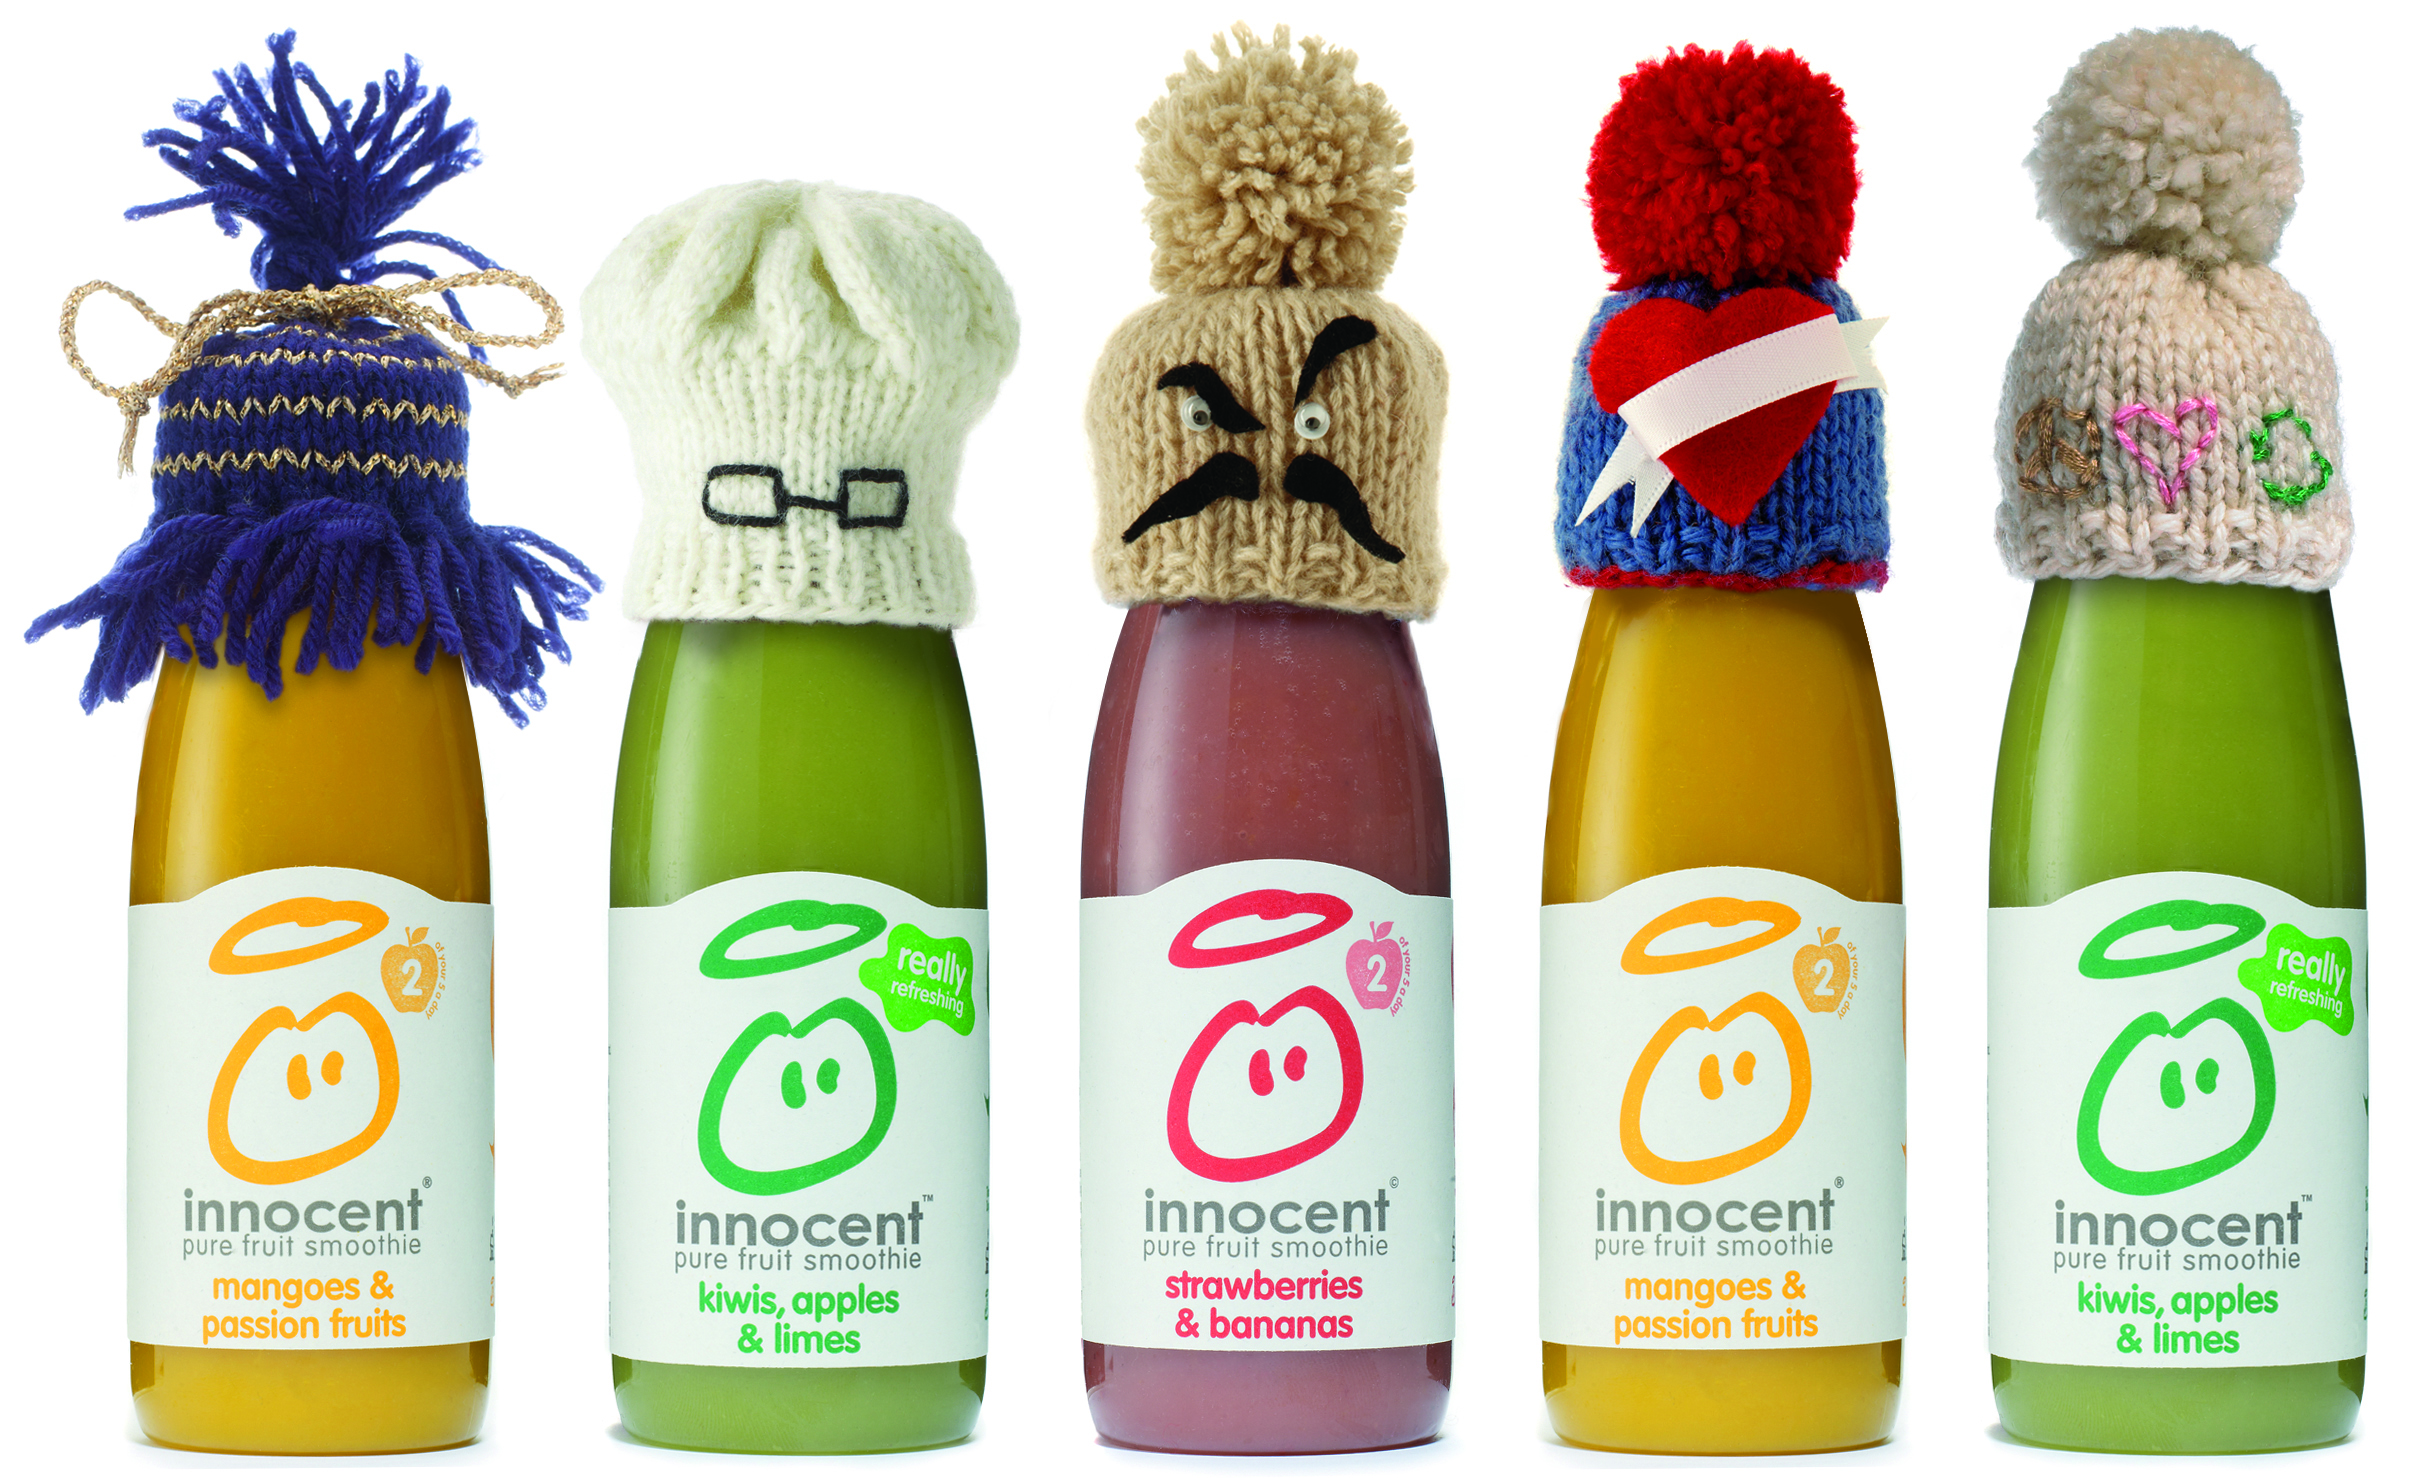 Innocent Smoothies are a company that have benefited greatly from cross-channel marketing.